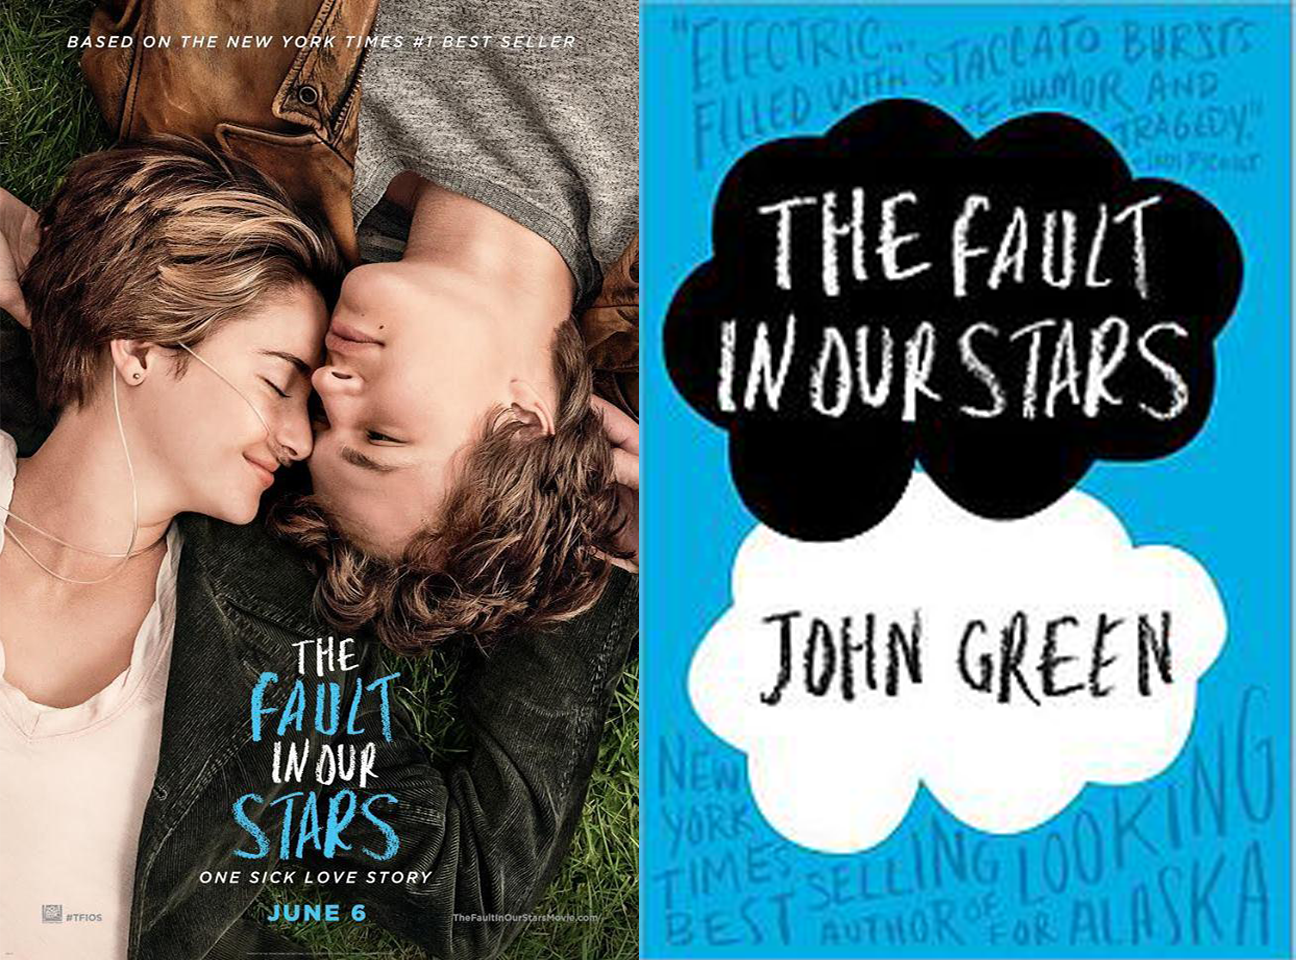 The Fault in our Stars Book Cover and Movie Poster at http://ohanareads.blogspot.com/2014/07/the-fault-in-our-stars-movie-review.html